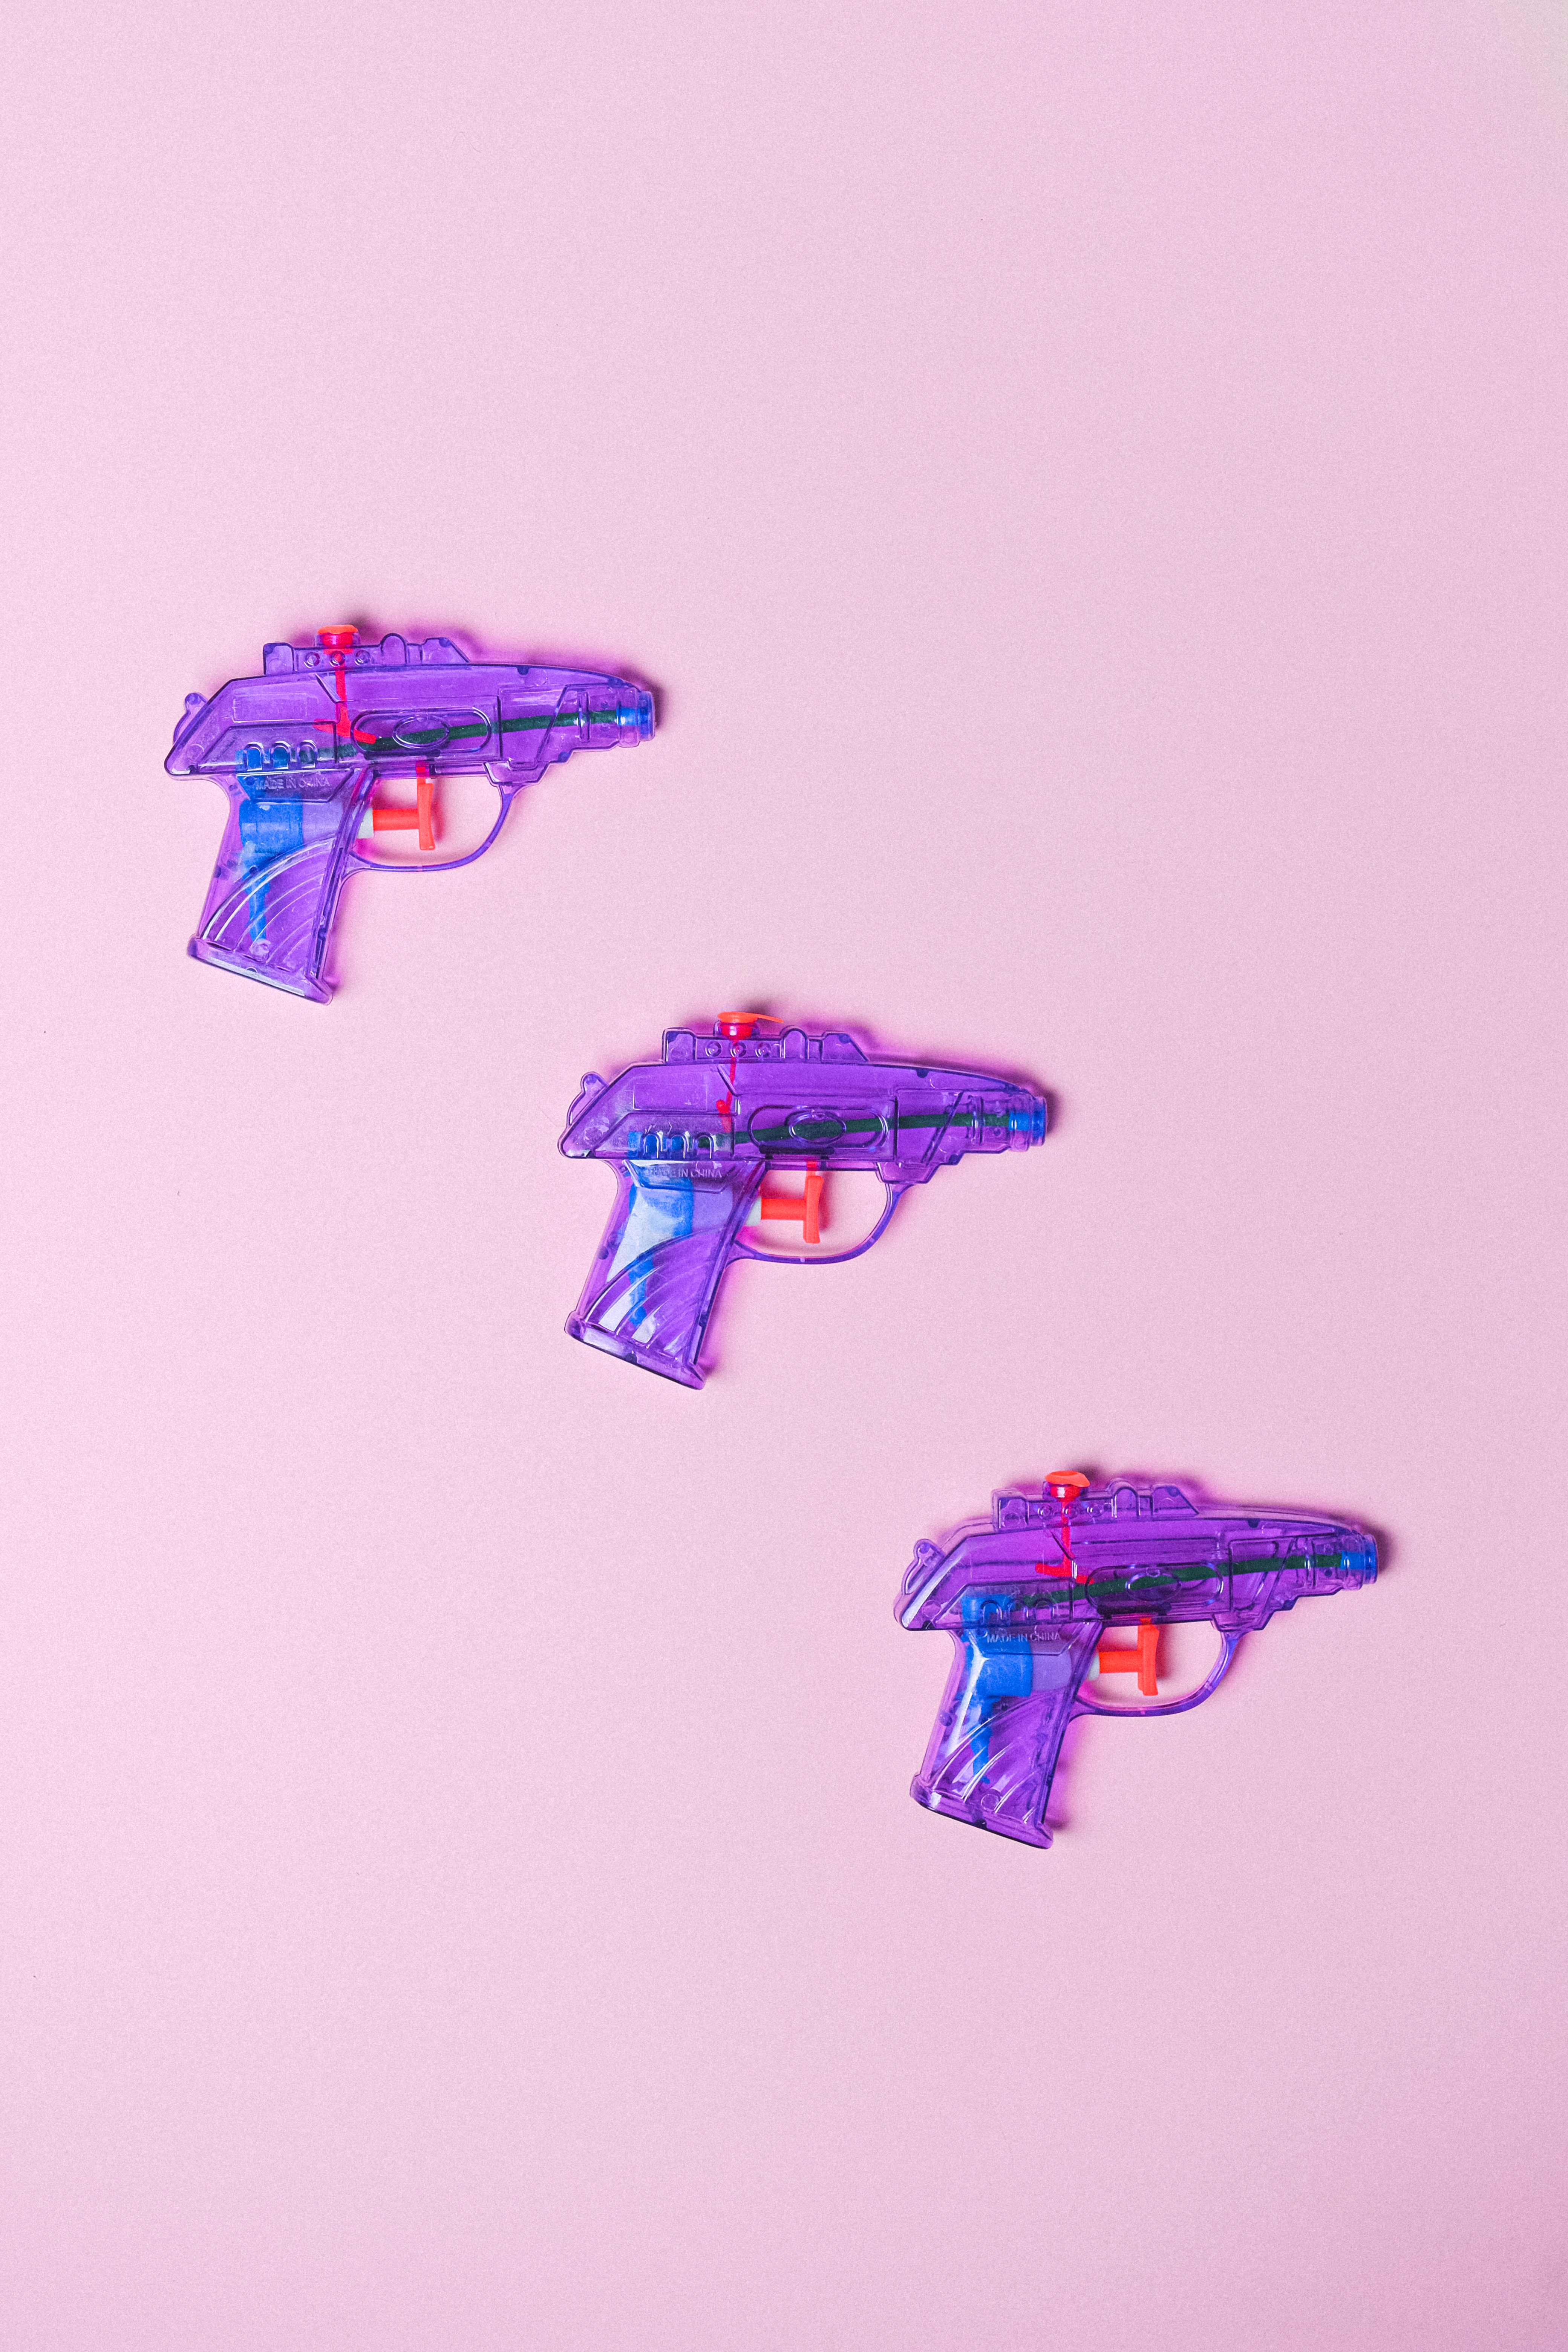 plastic toy pistols for shooting game